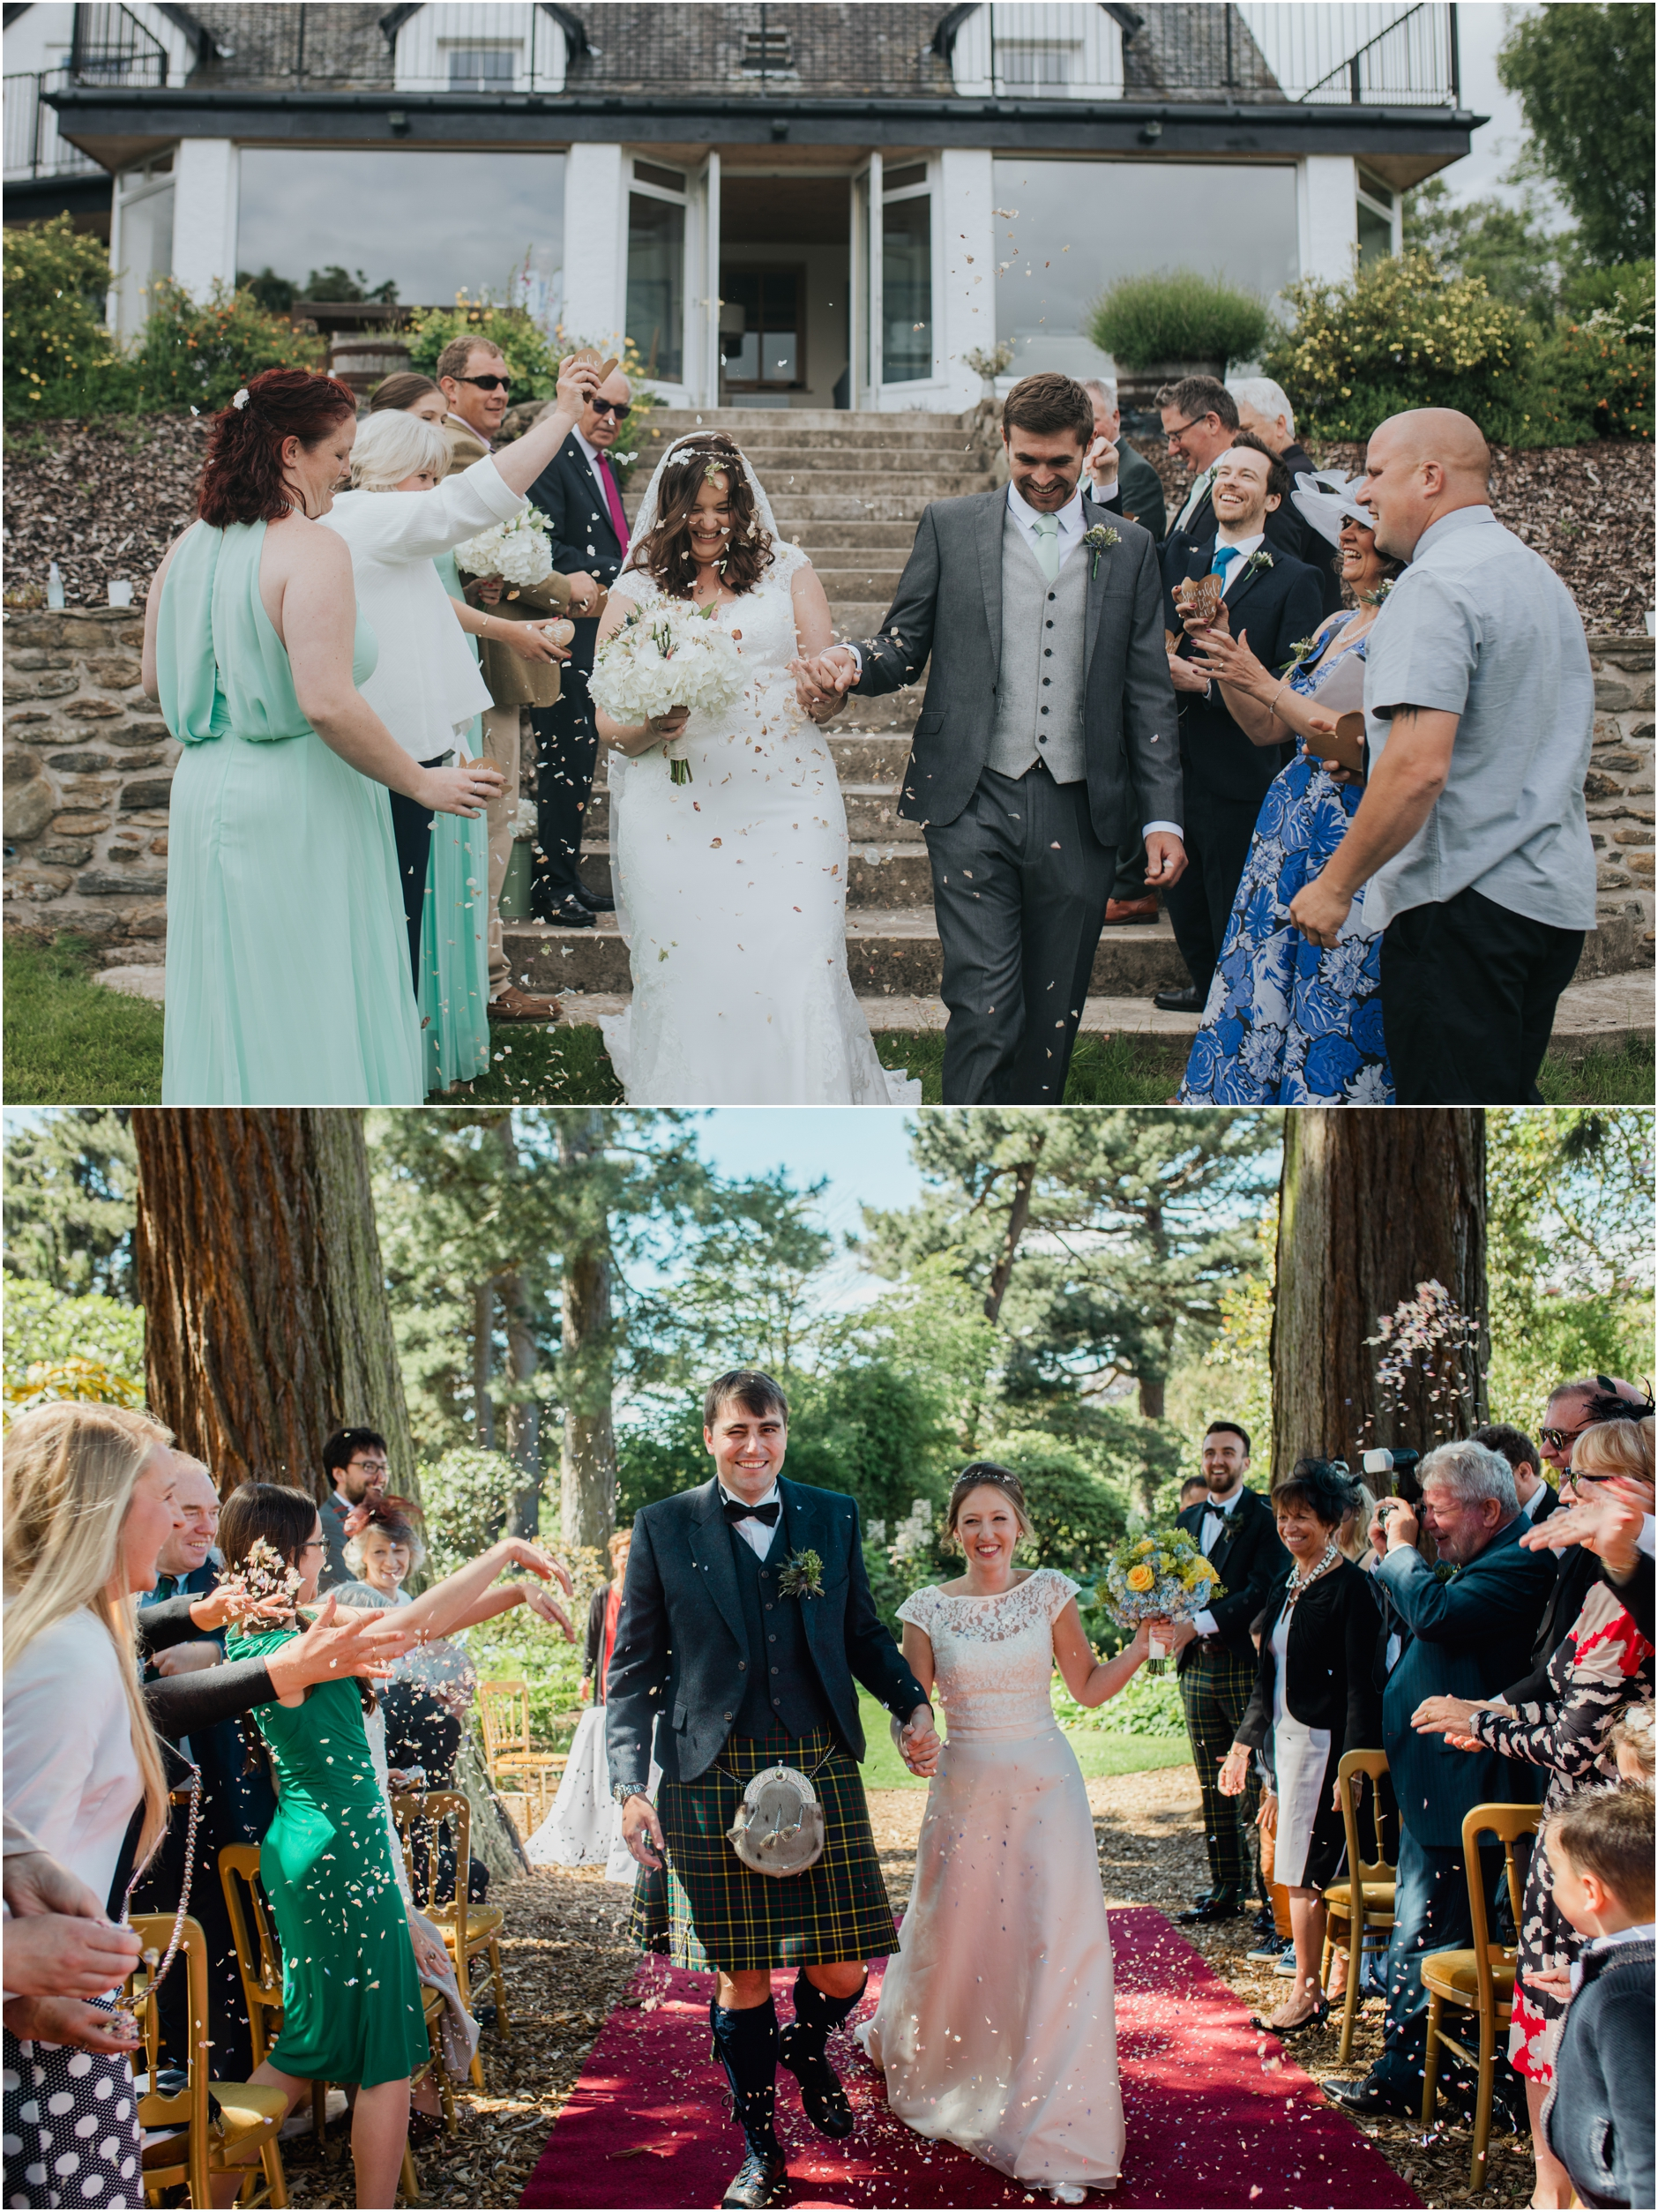 outdoor scottish weddings with couples having confetti thrown at them as they walk up the isle